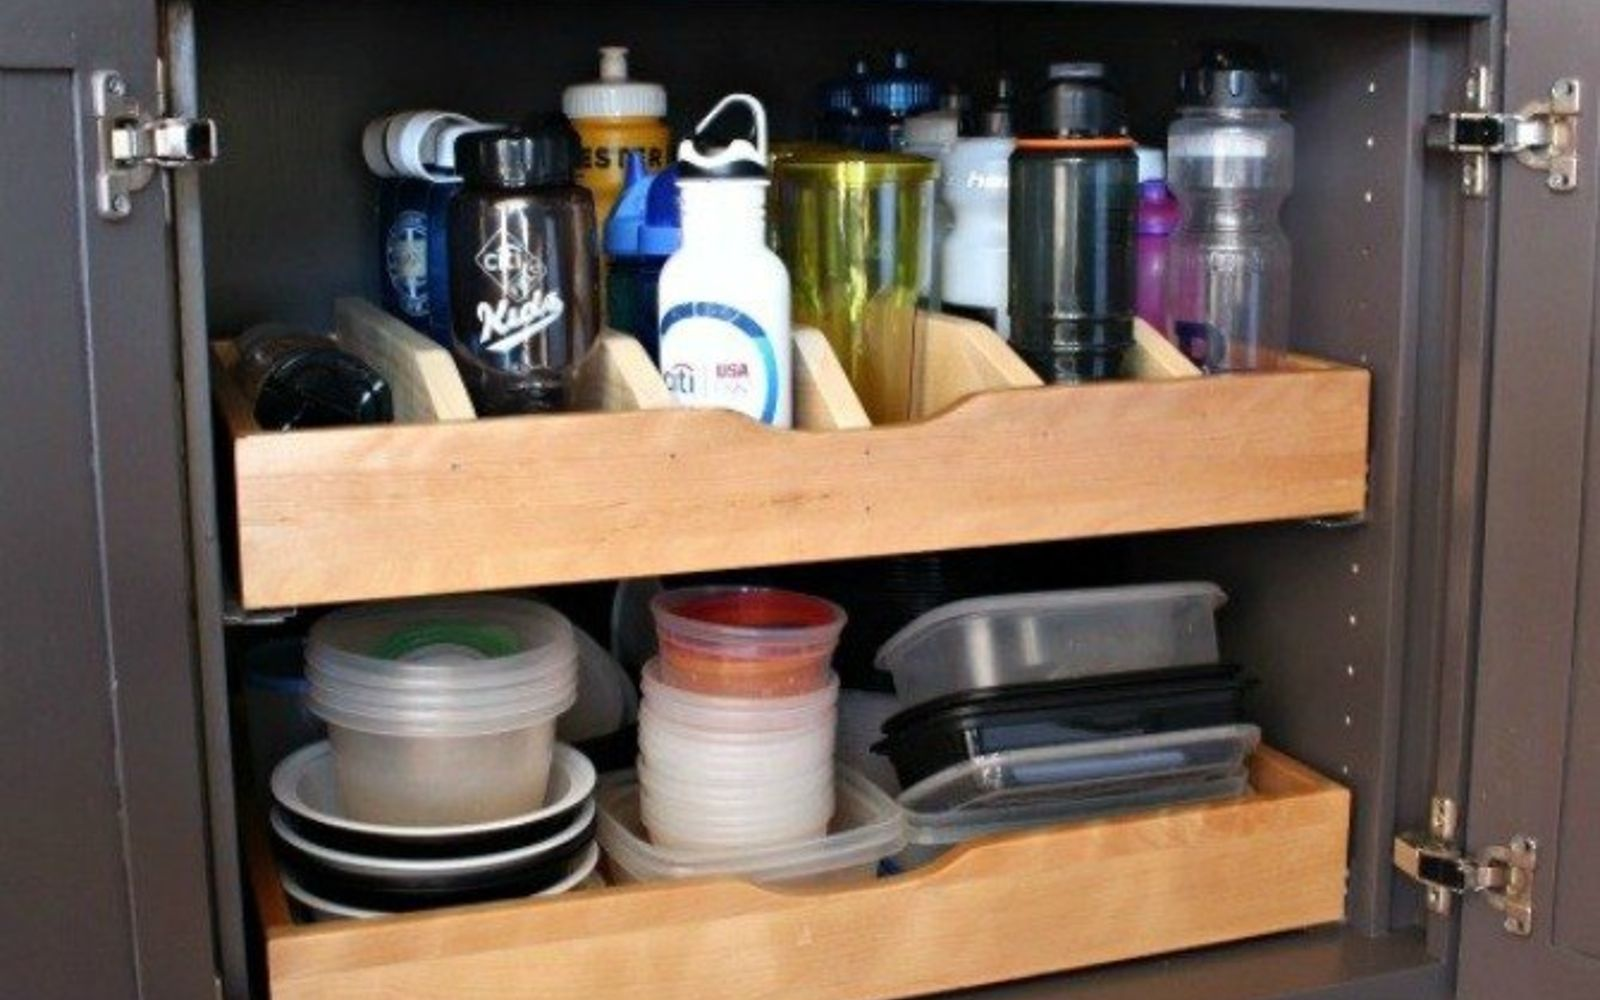 s 9 incredible organizing ideas we wish we d seen sooner, organizing, repurposing upcycling, These customized DIY drawer dividers